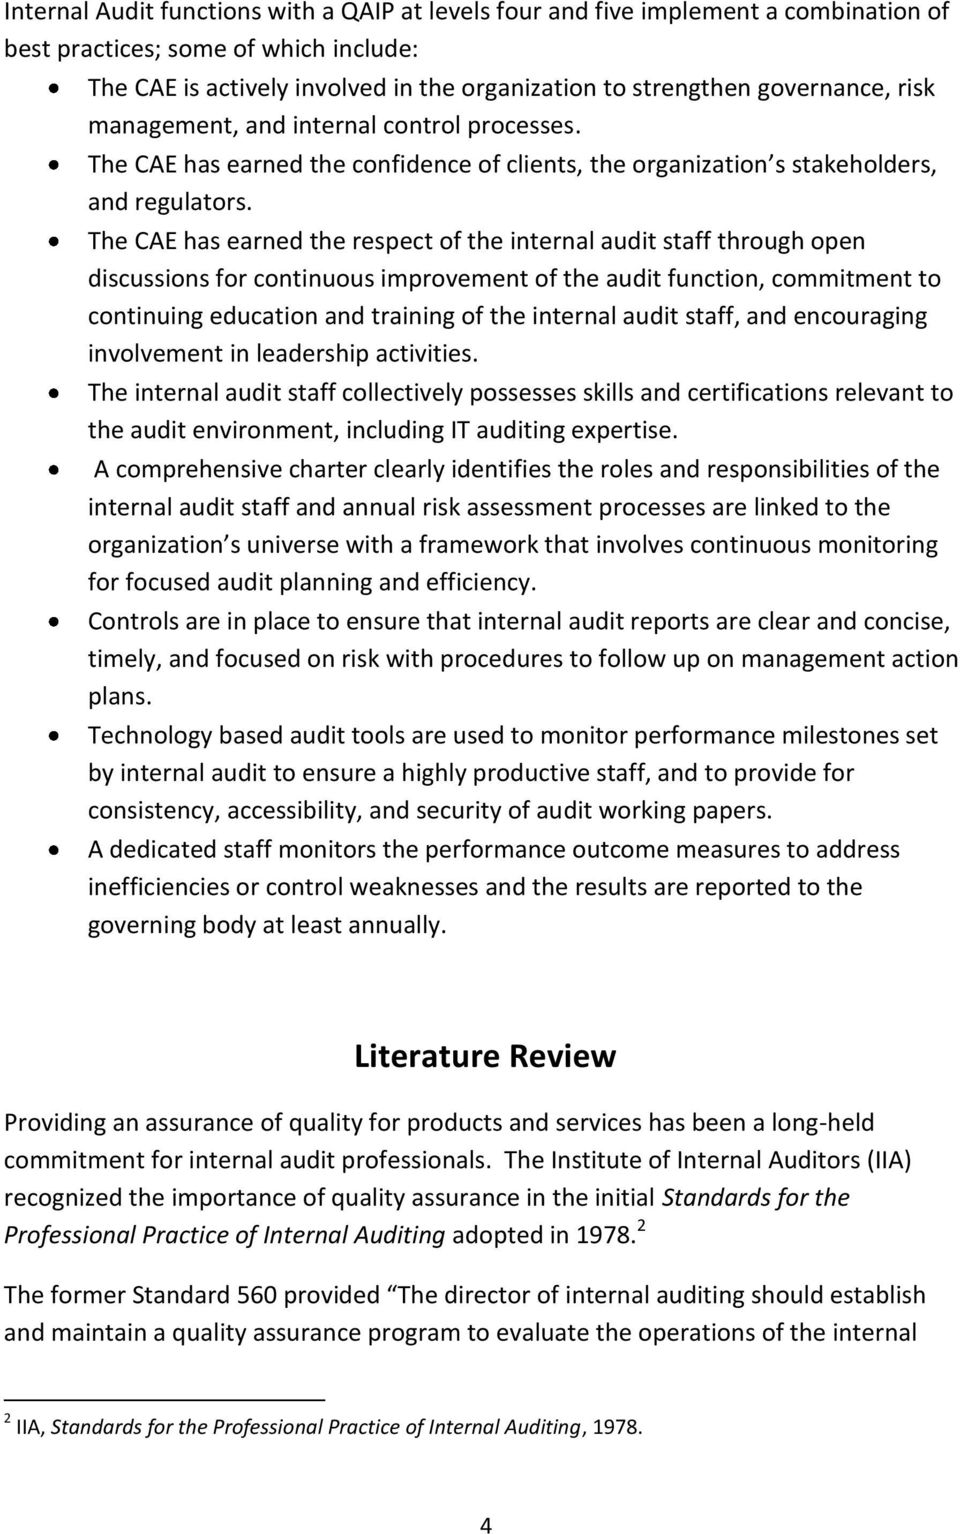 literature review on internal audit